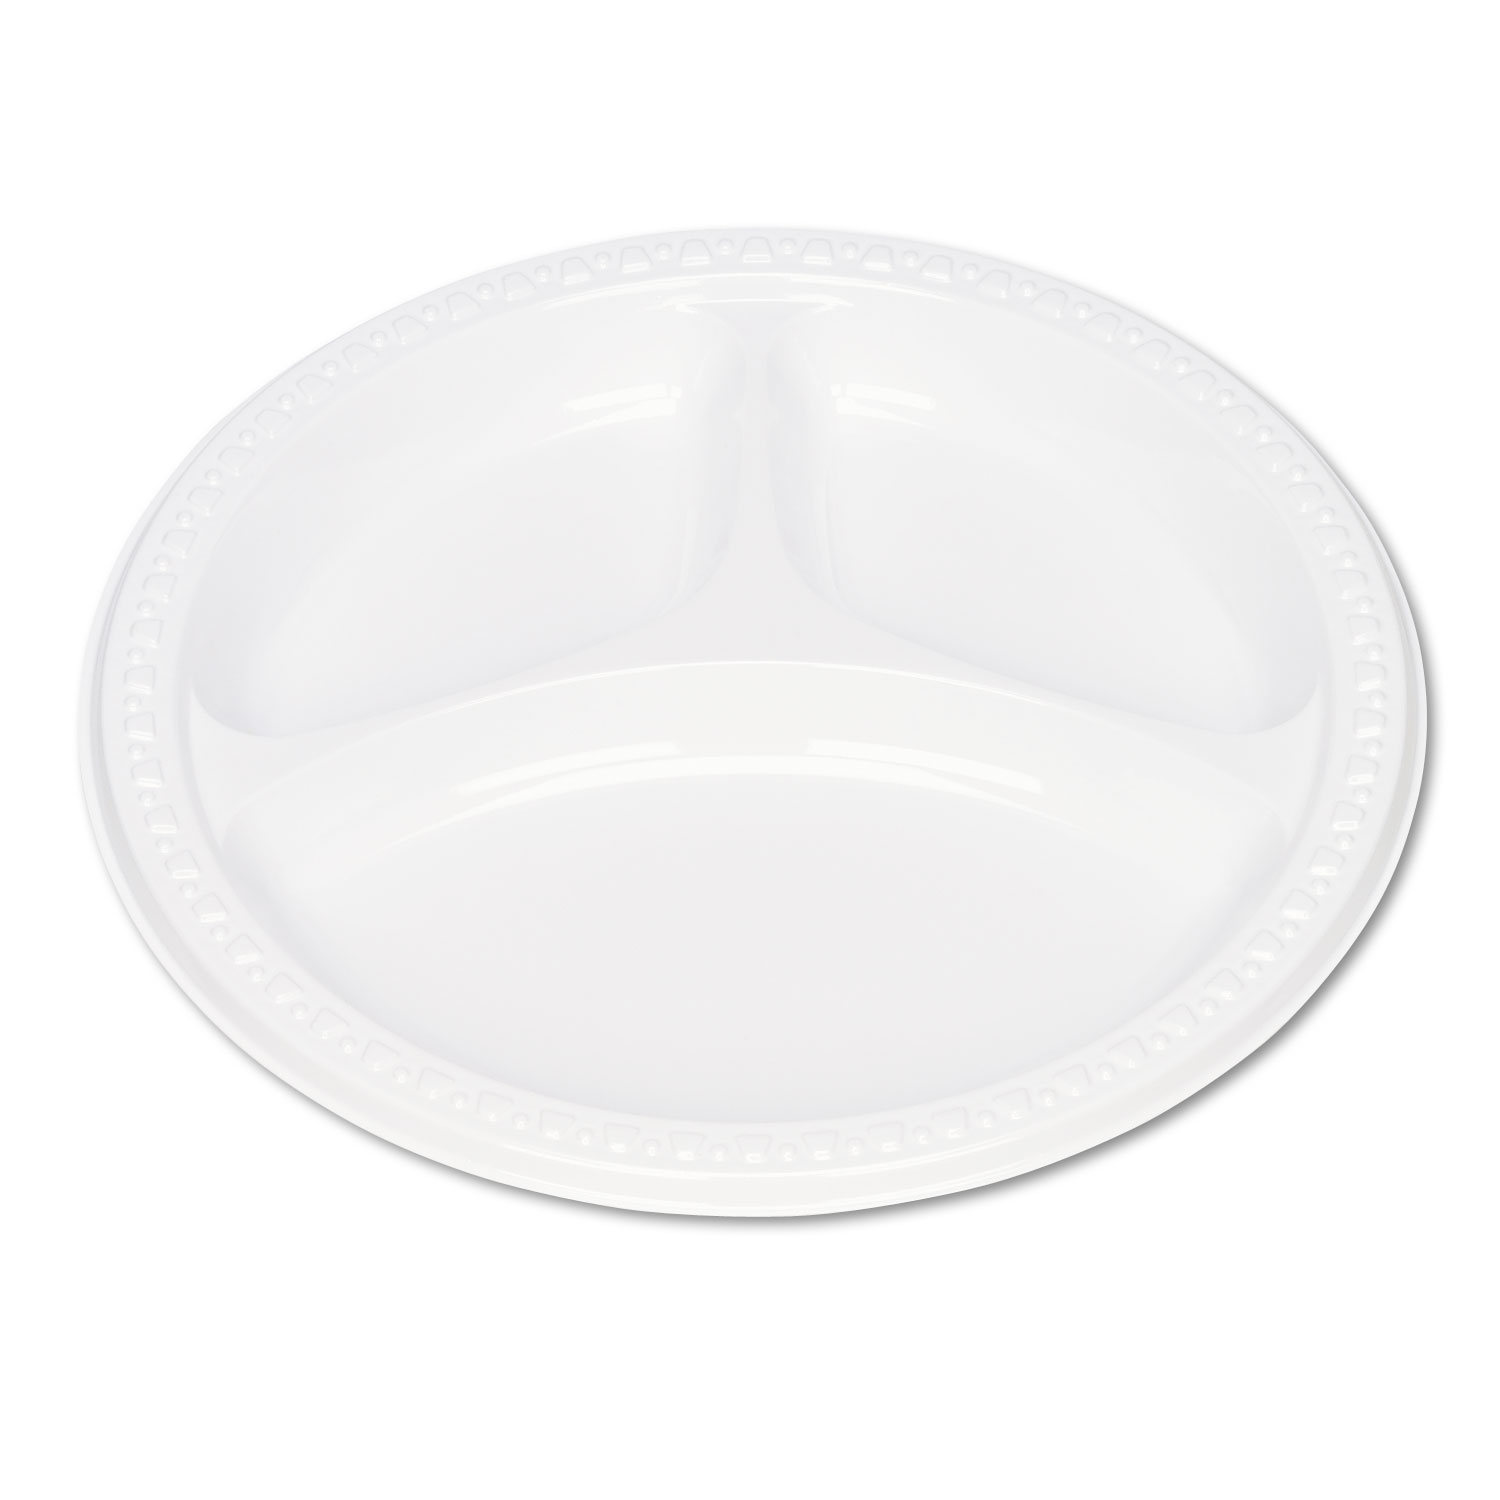 Tablemate TBL19644WH Plastic Dinnerware, Compartment Plates, 9